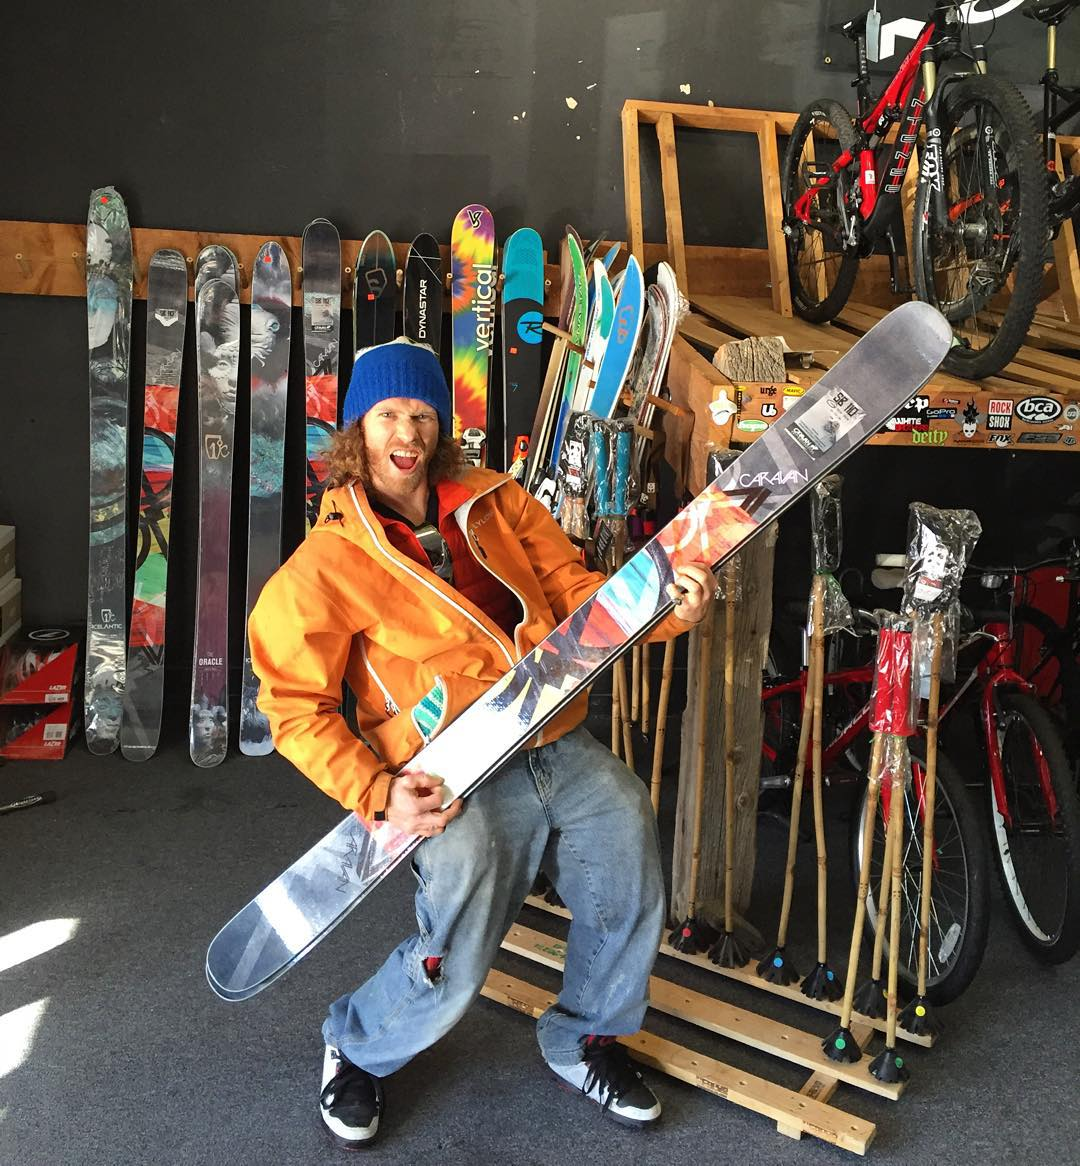 The Panda Chief couldn't be more stoked on his new bamboo shred sticks from Caravan Ski Collective! HandCrafted with bamboo cores, basalt sidewalls, and eco epoxy, the skis are not only extremely well built, but are also far more sustainable to produce...